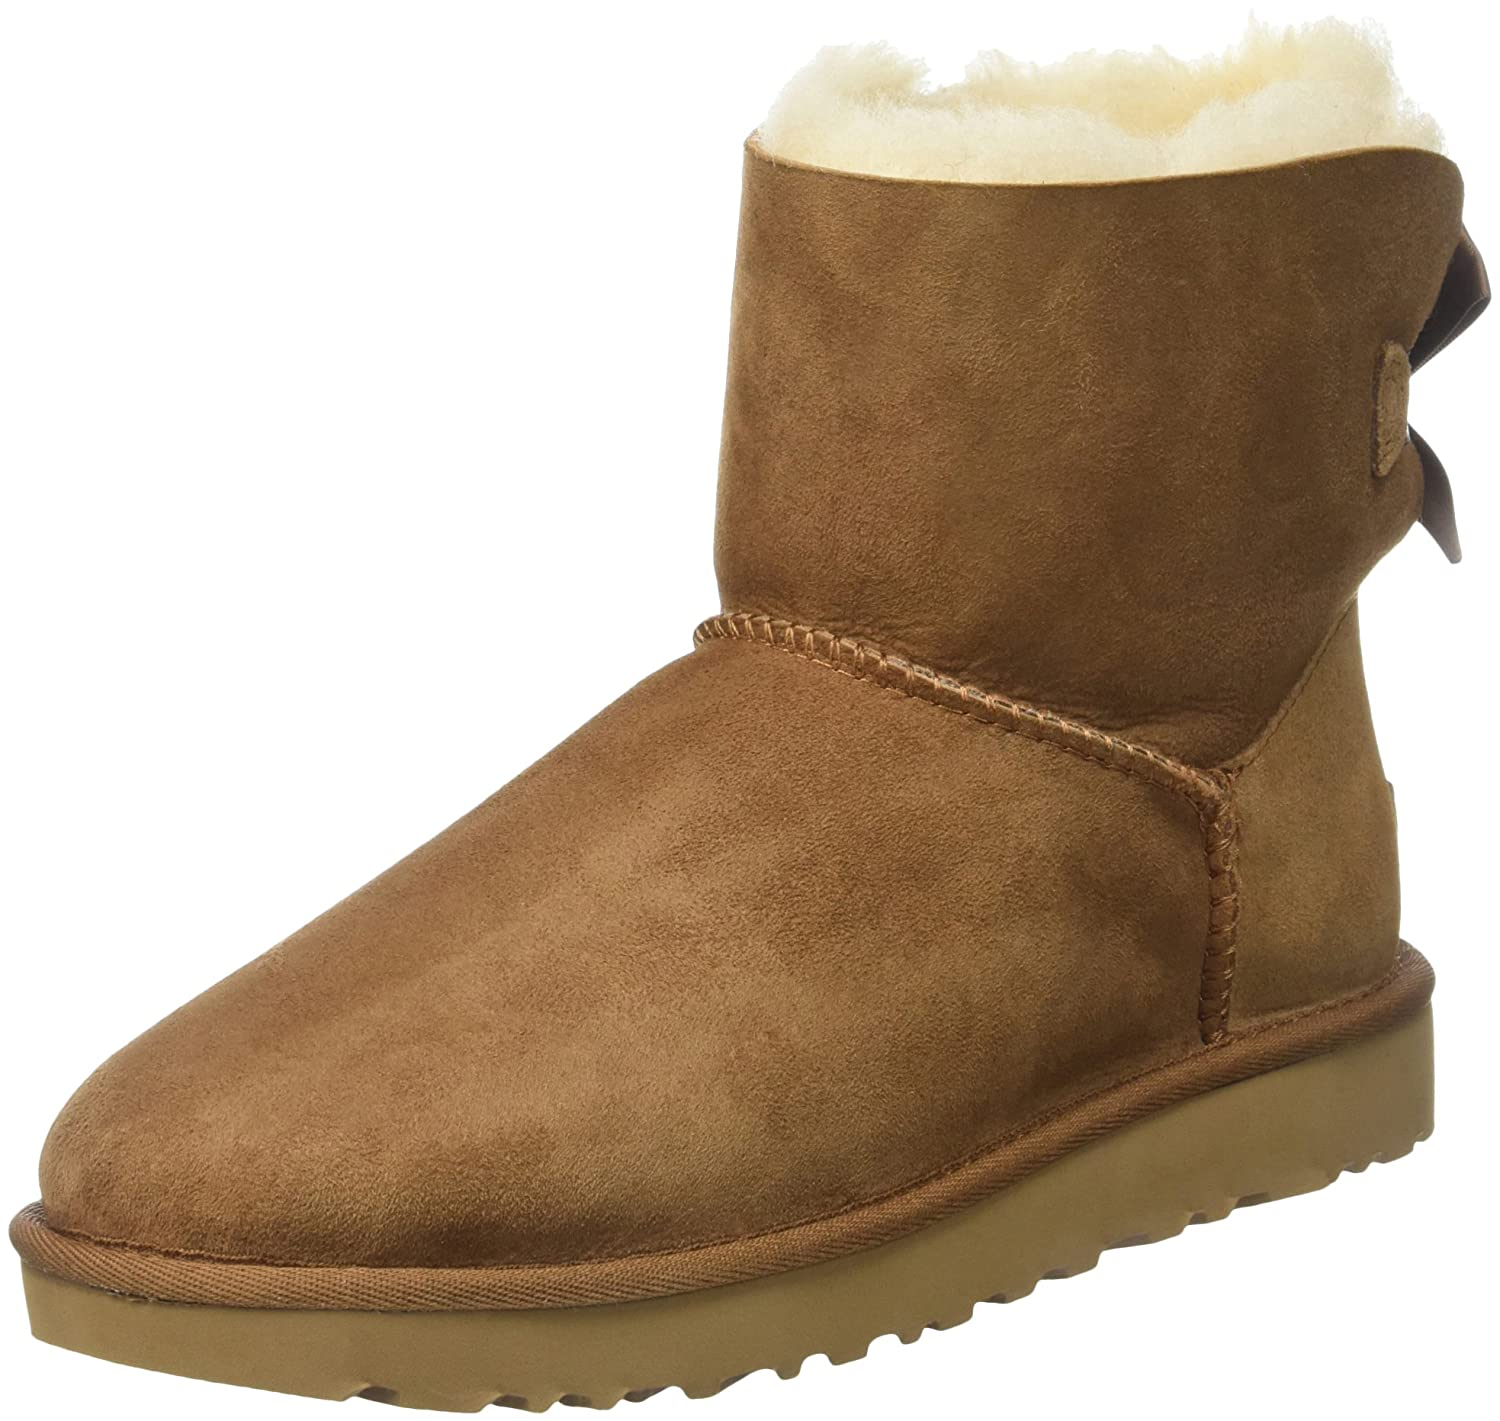 UGG Australia Marron Mini femme Bailey Bow, baskets 7605 montantes femme Marron (Chestnut) 65bd3b8 - avtodorozhniks.space